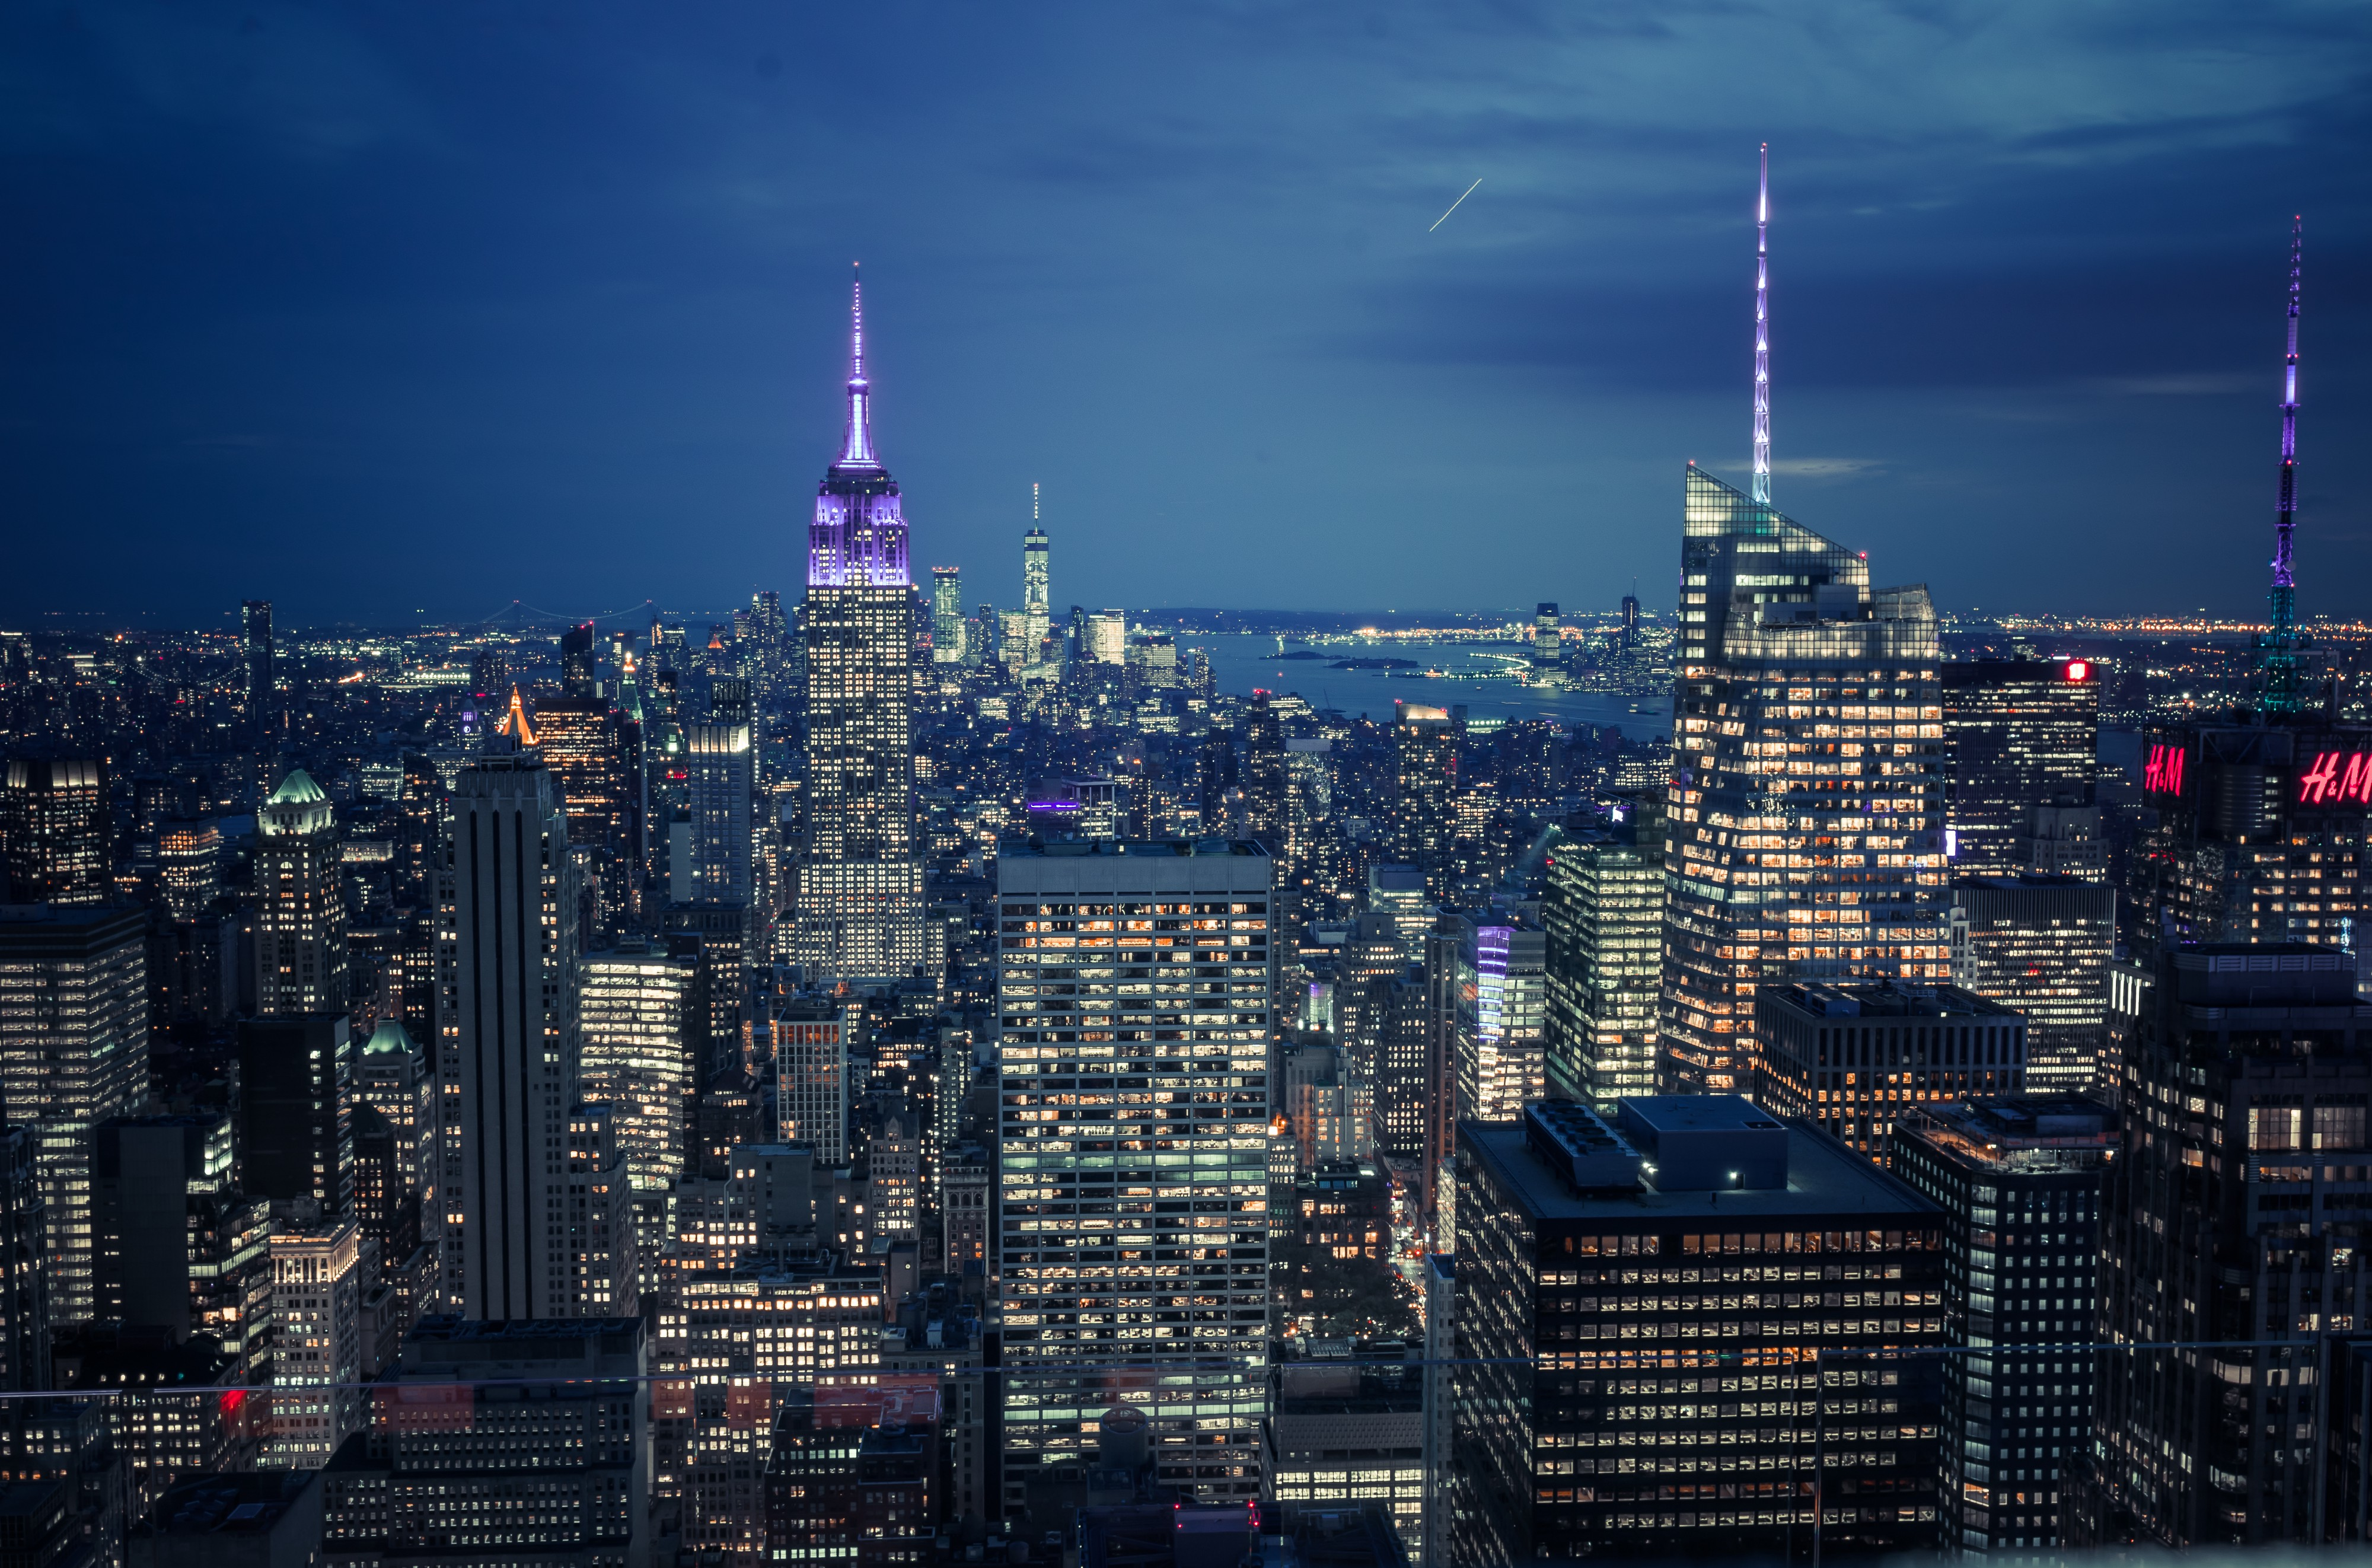 The New York skyline in the evening with lights in the windows of buildings against a darkening sky.